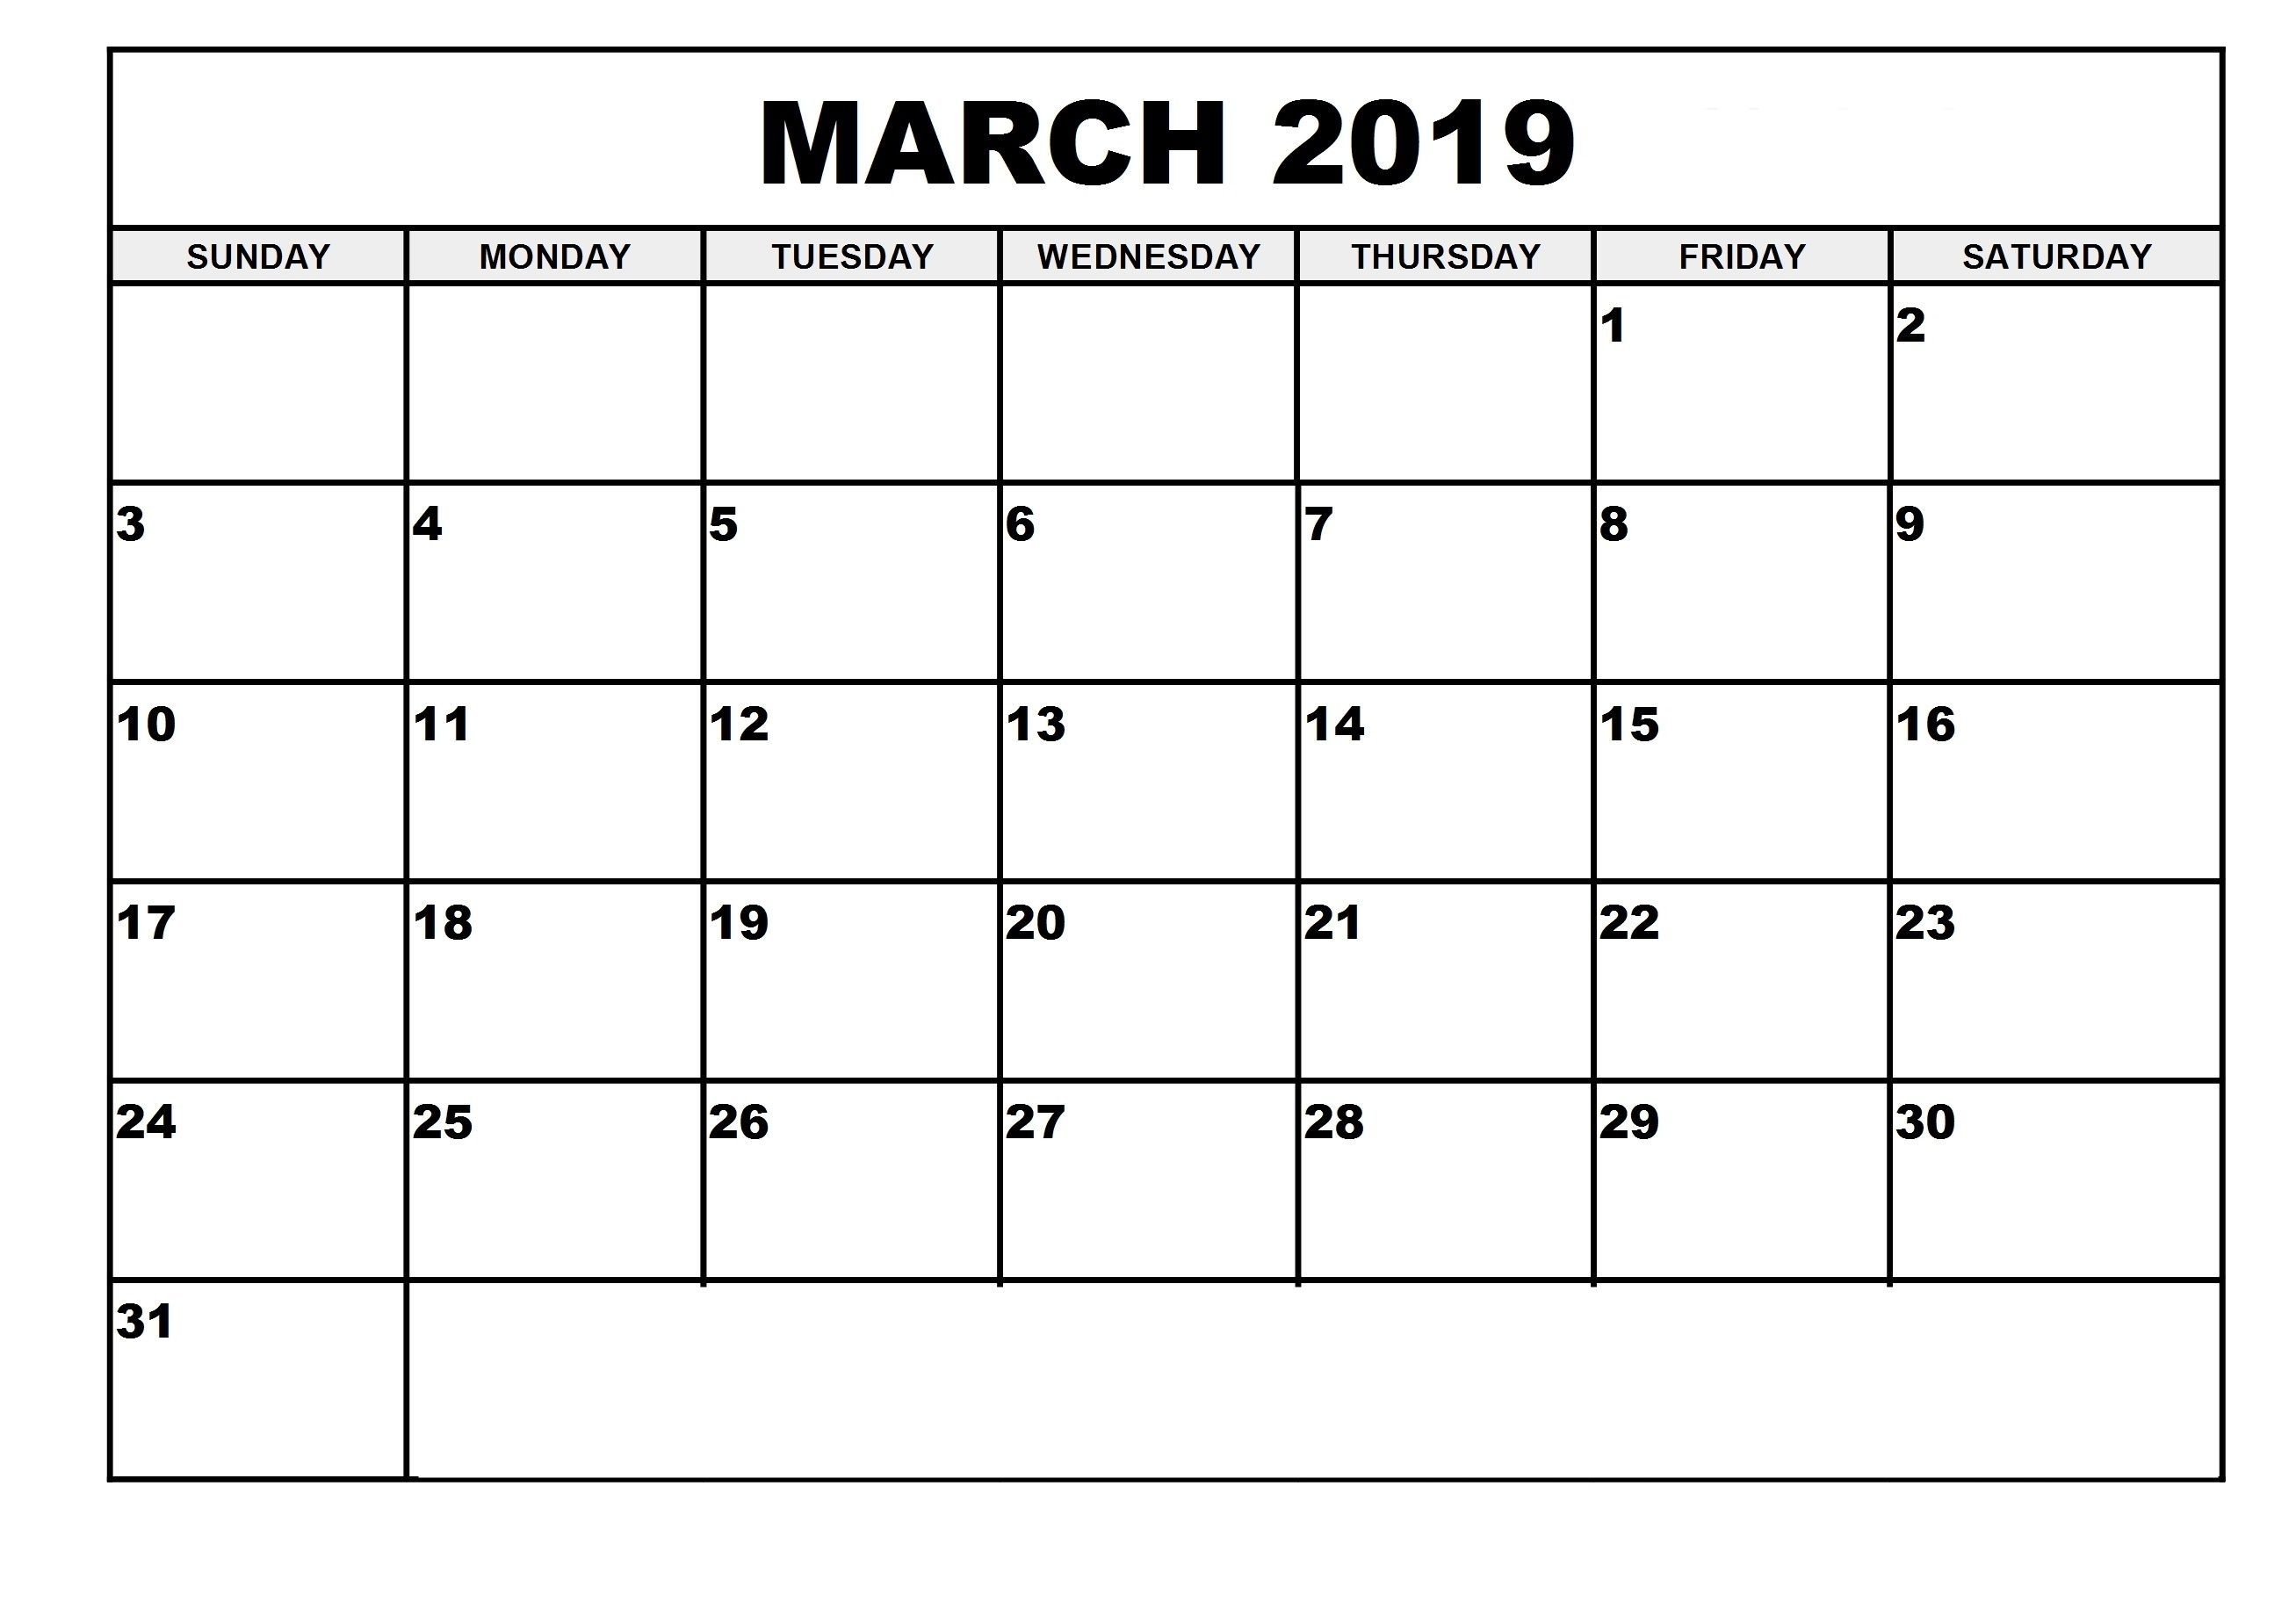 March Comes As The Third Month Of The Year With A Total Of 31 Days throughout Months Of The Year With 31 Days